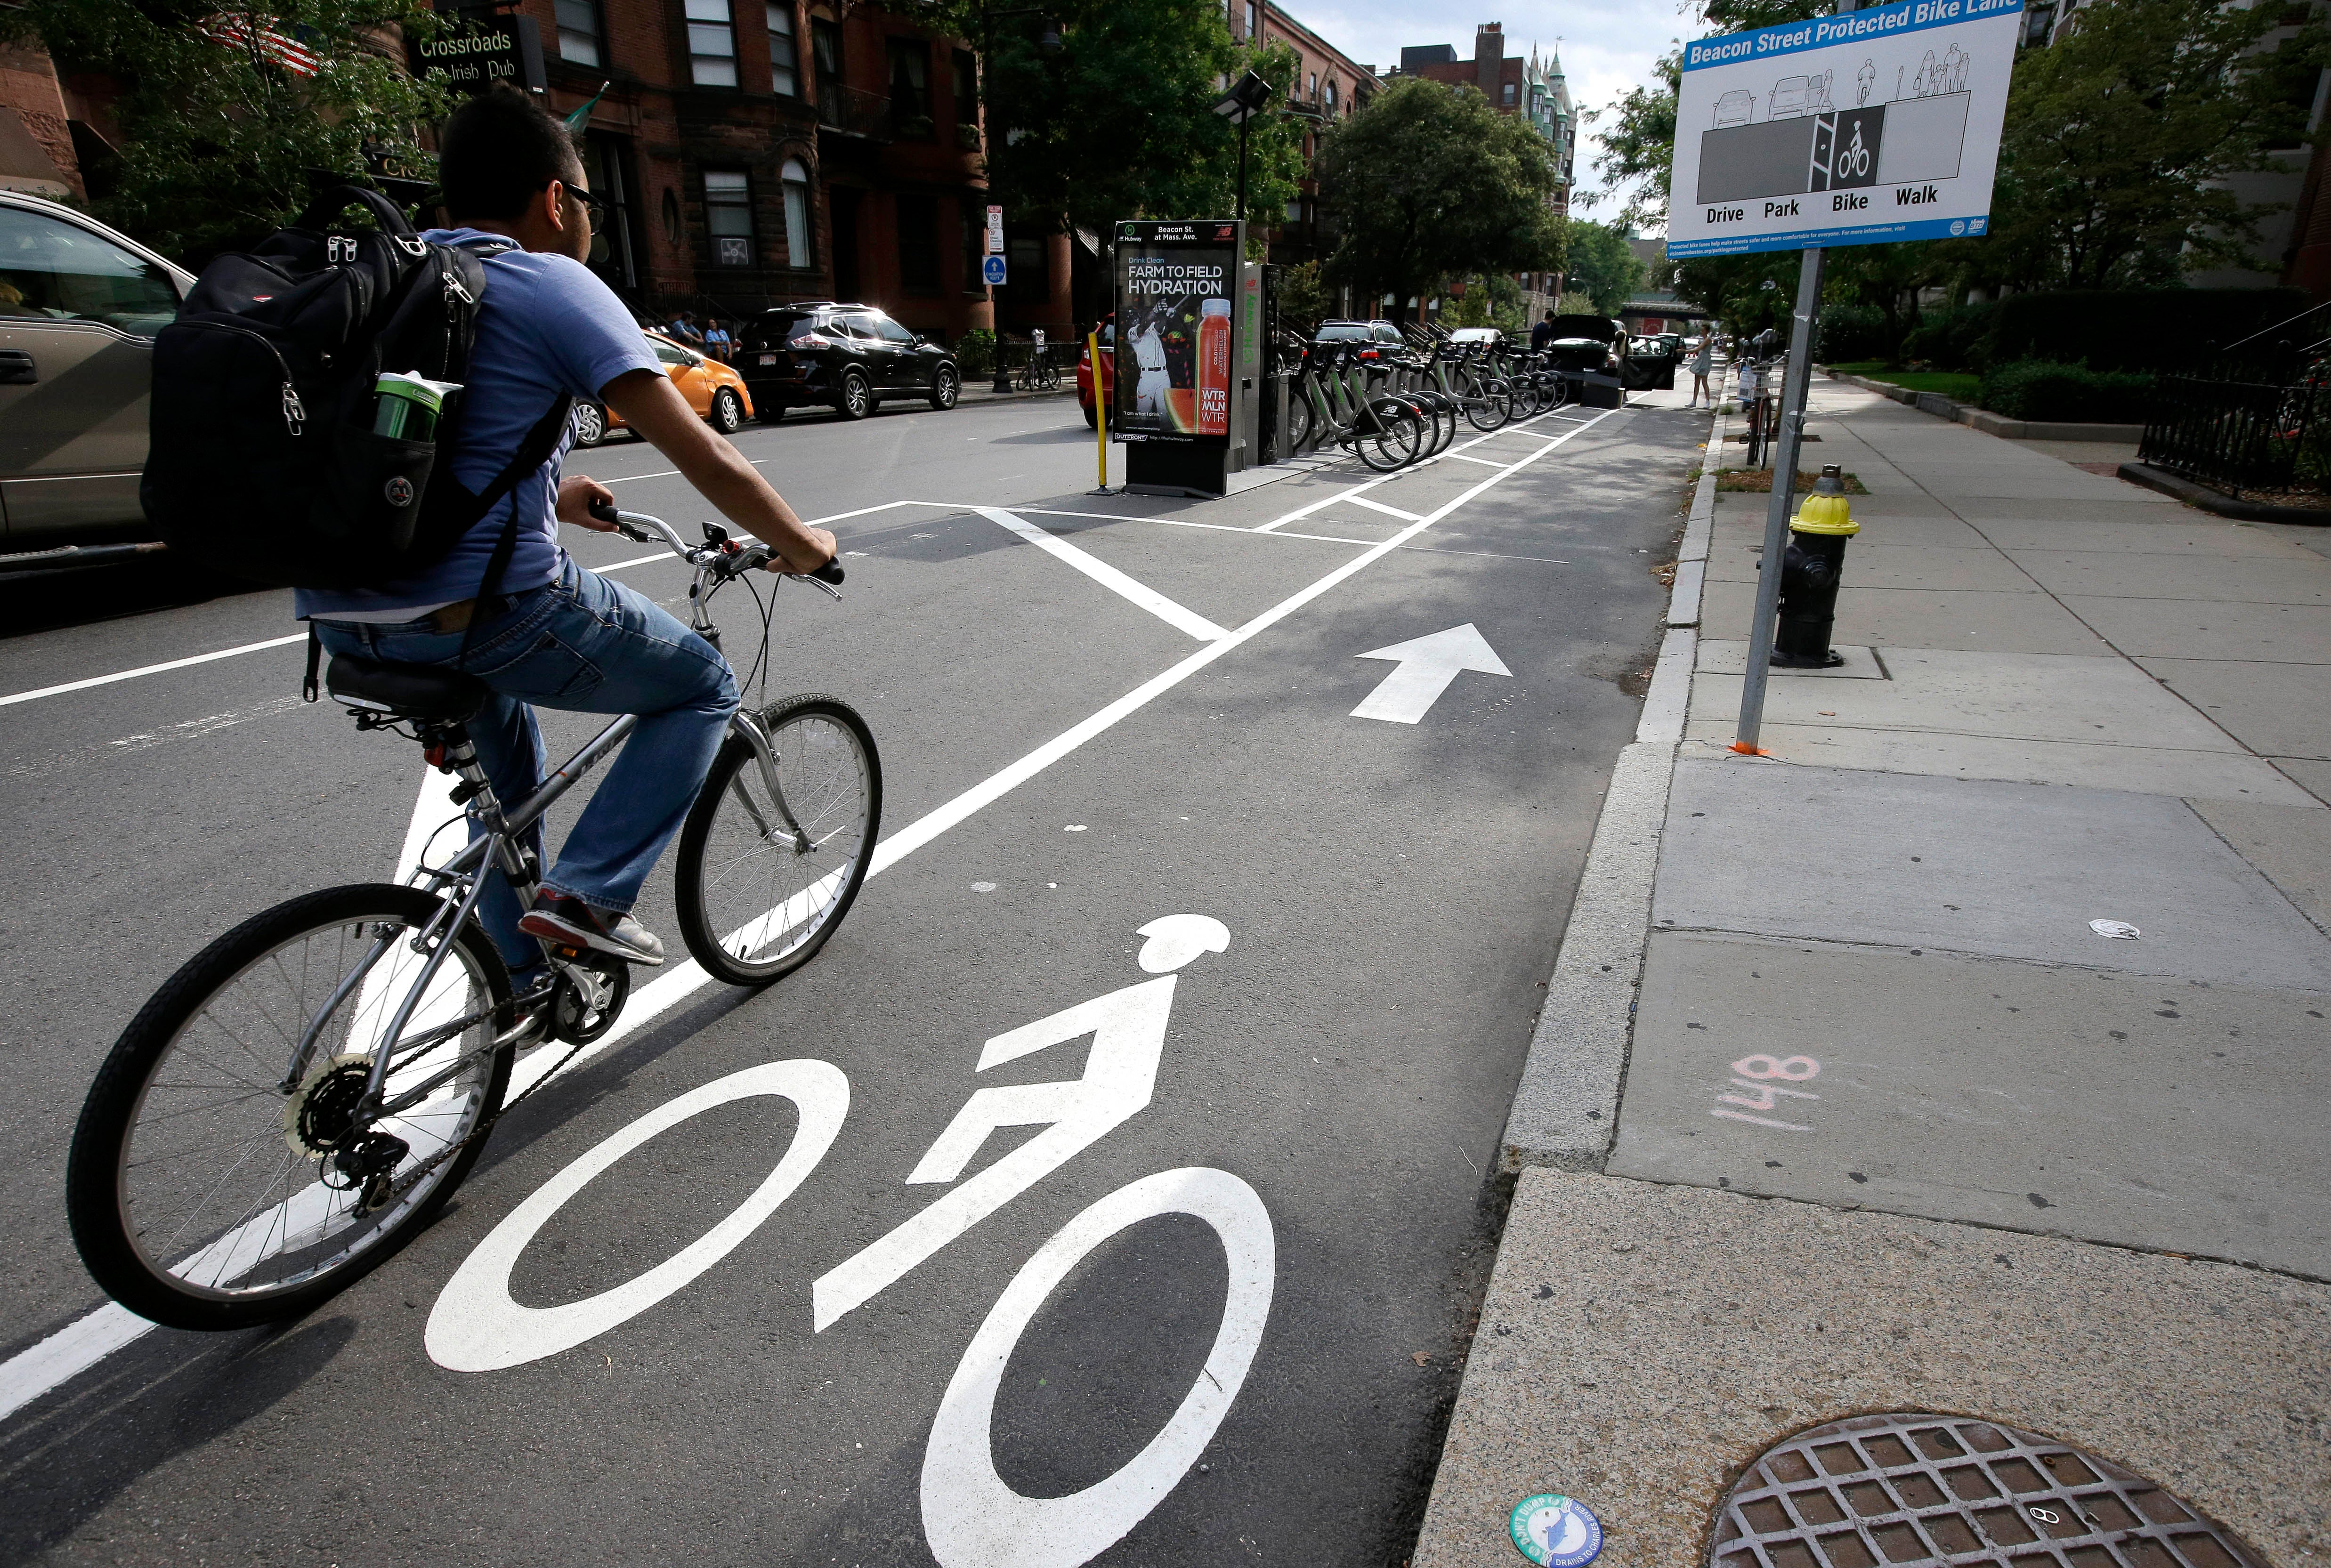 In this Tuesday, Aug. 16, 2016, photo, a cyclist enters a bike lane that is routed between parked cars and the sidewalk in Boston. Cities around the world are increasingly changing bike lanes to make them safer in light of fatal crashes involving cyclists and cars. (AP Photo/Steven Senne)